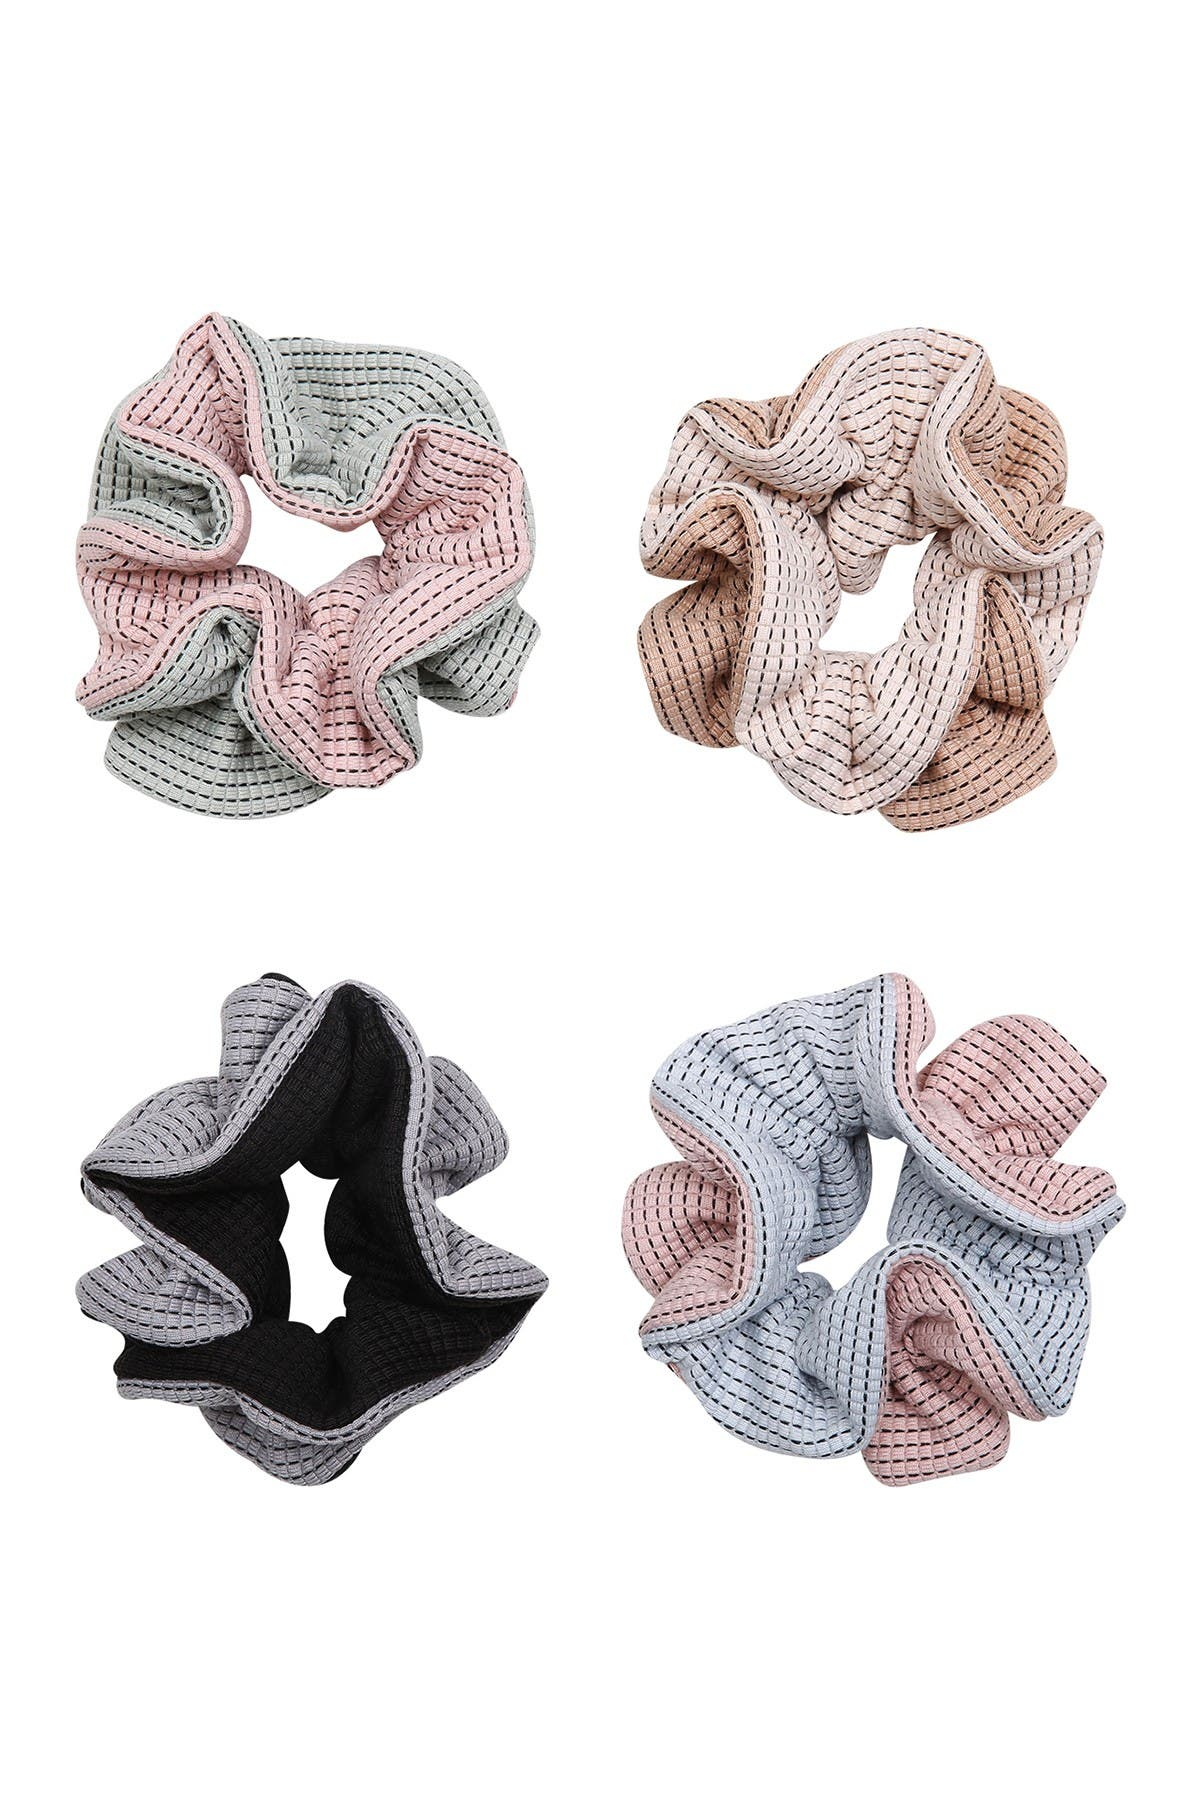 Image of Berry Ruffle Lounge Scrunchie Set - Pack of 4